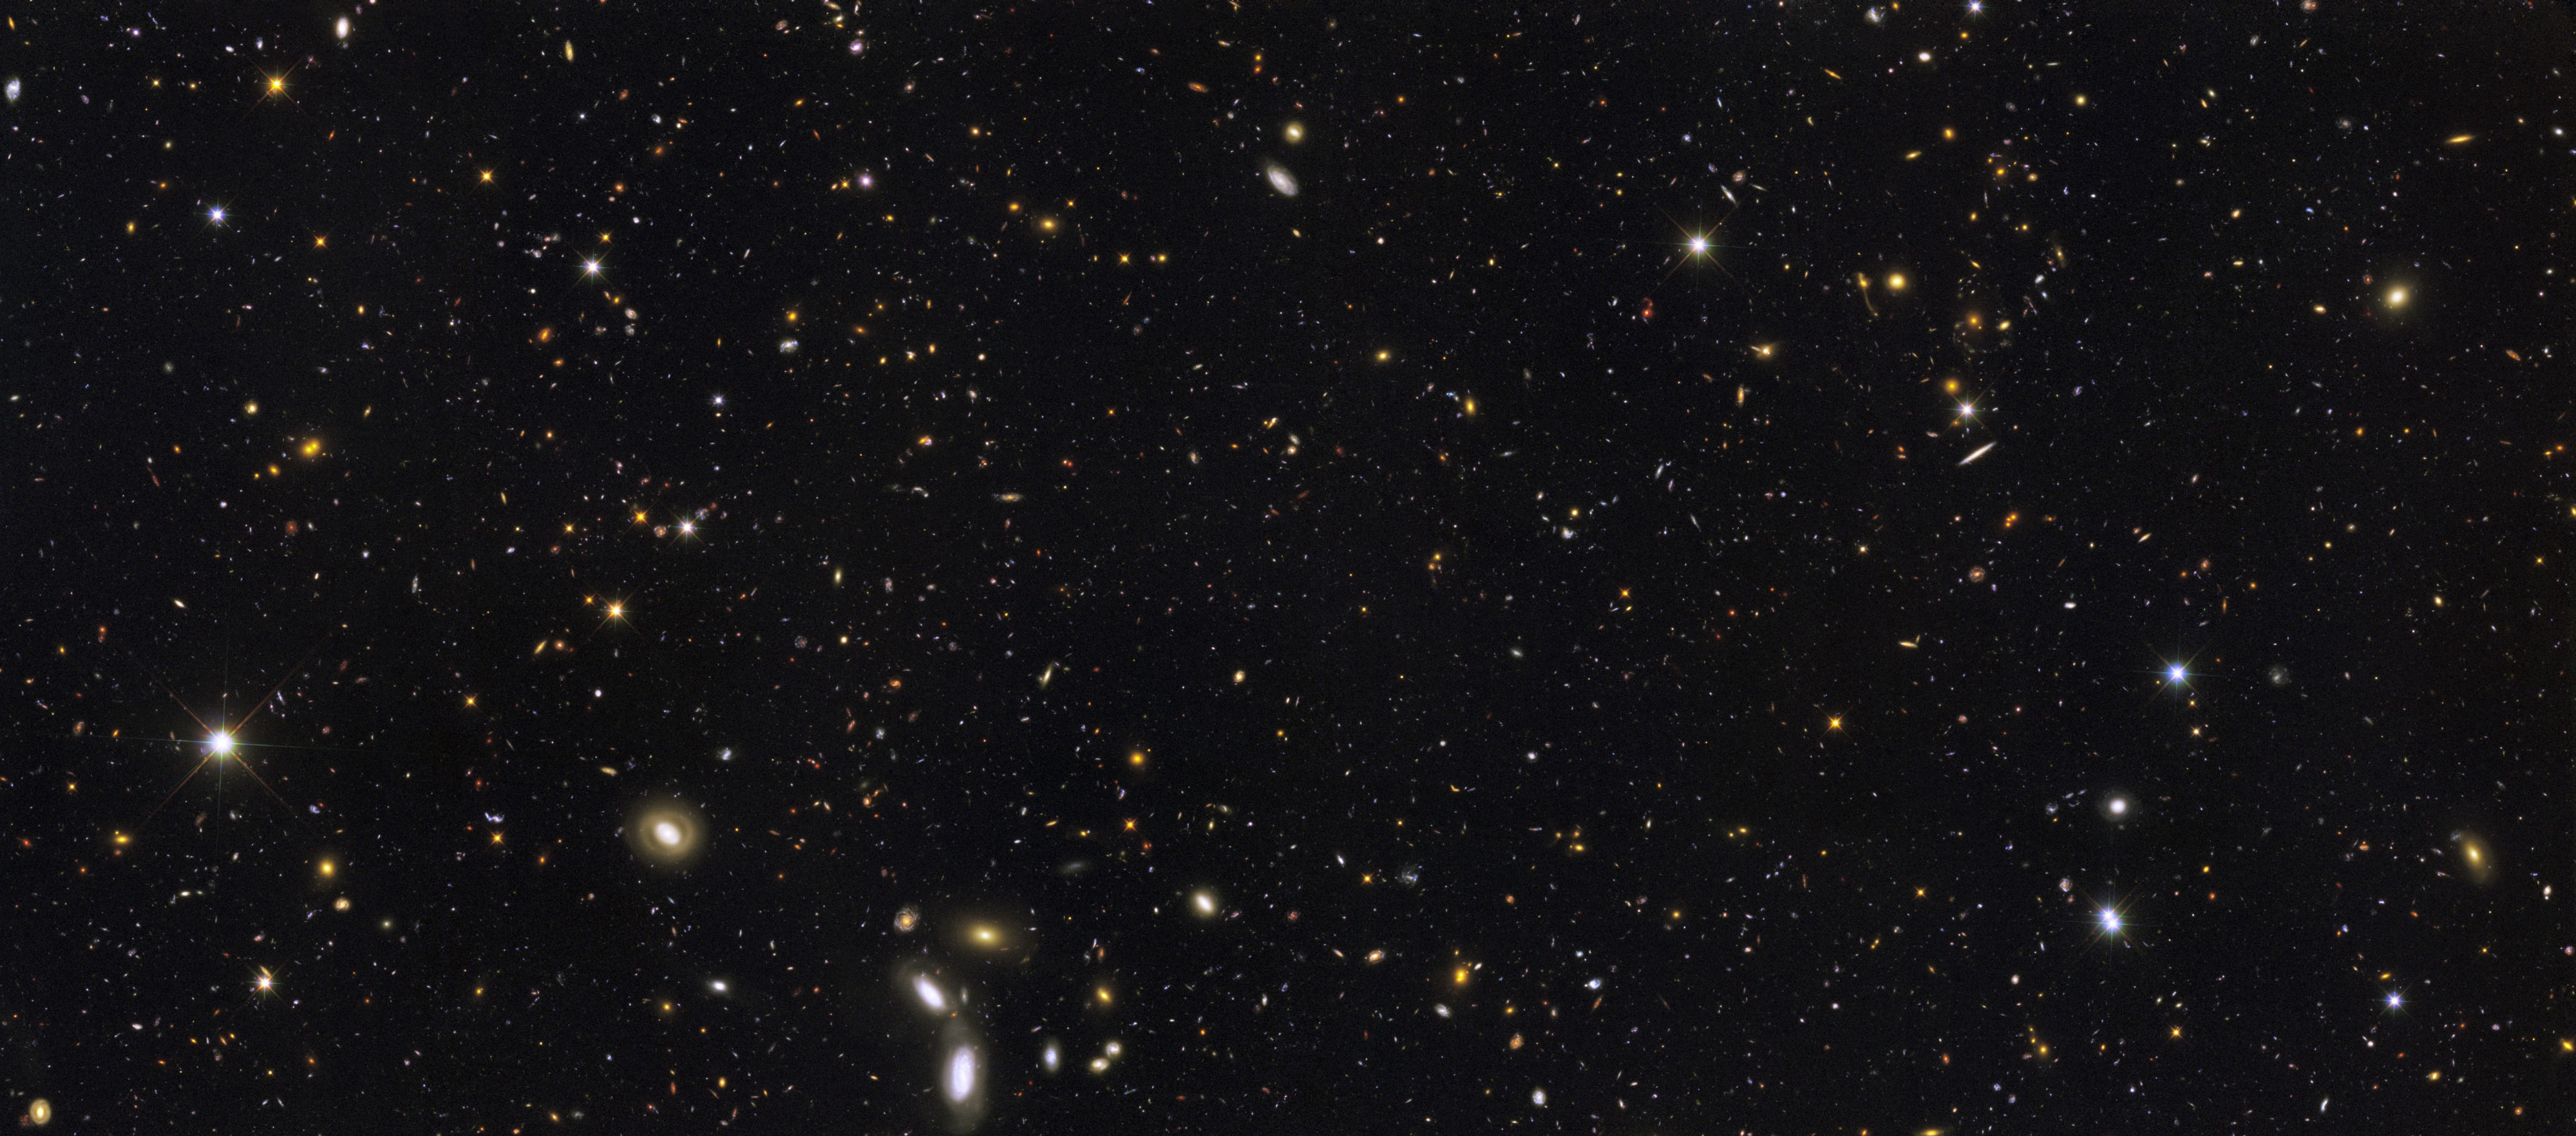 Galaxy history revealed by the Hubble Space Telescope (GOODS-ERS2)